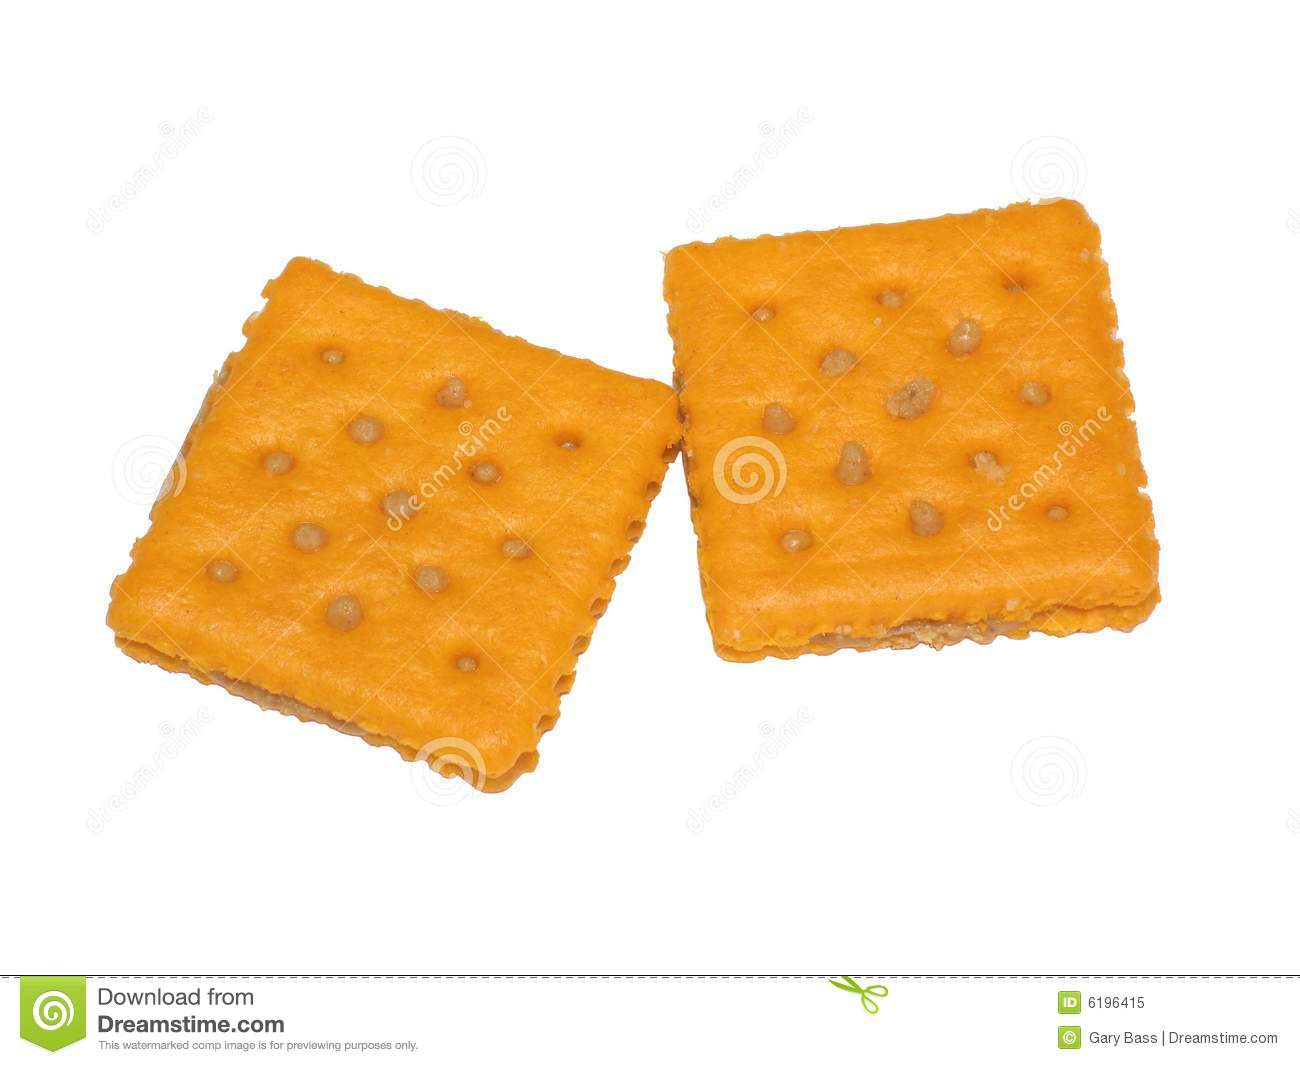 Cheese crackers stock image. Image of peanut, products.